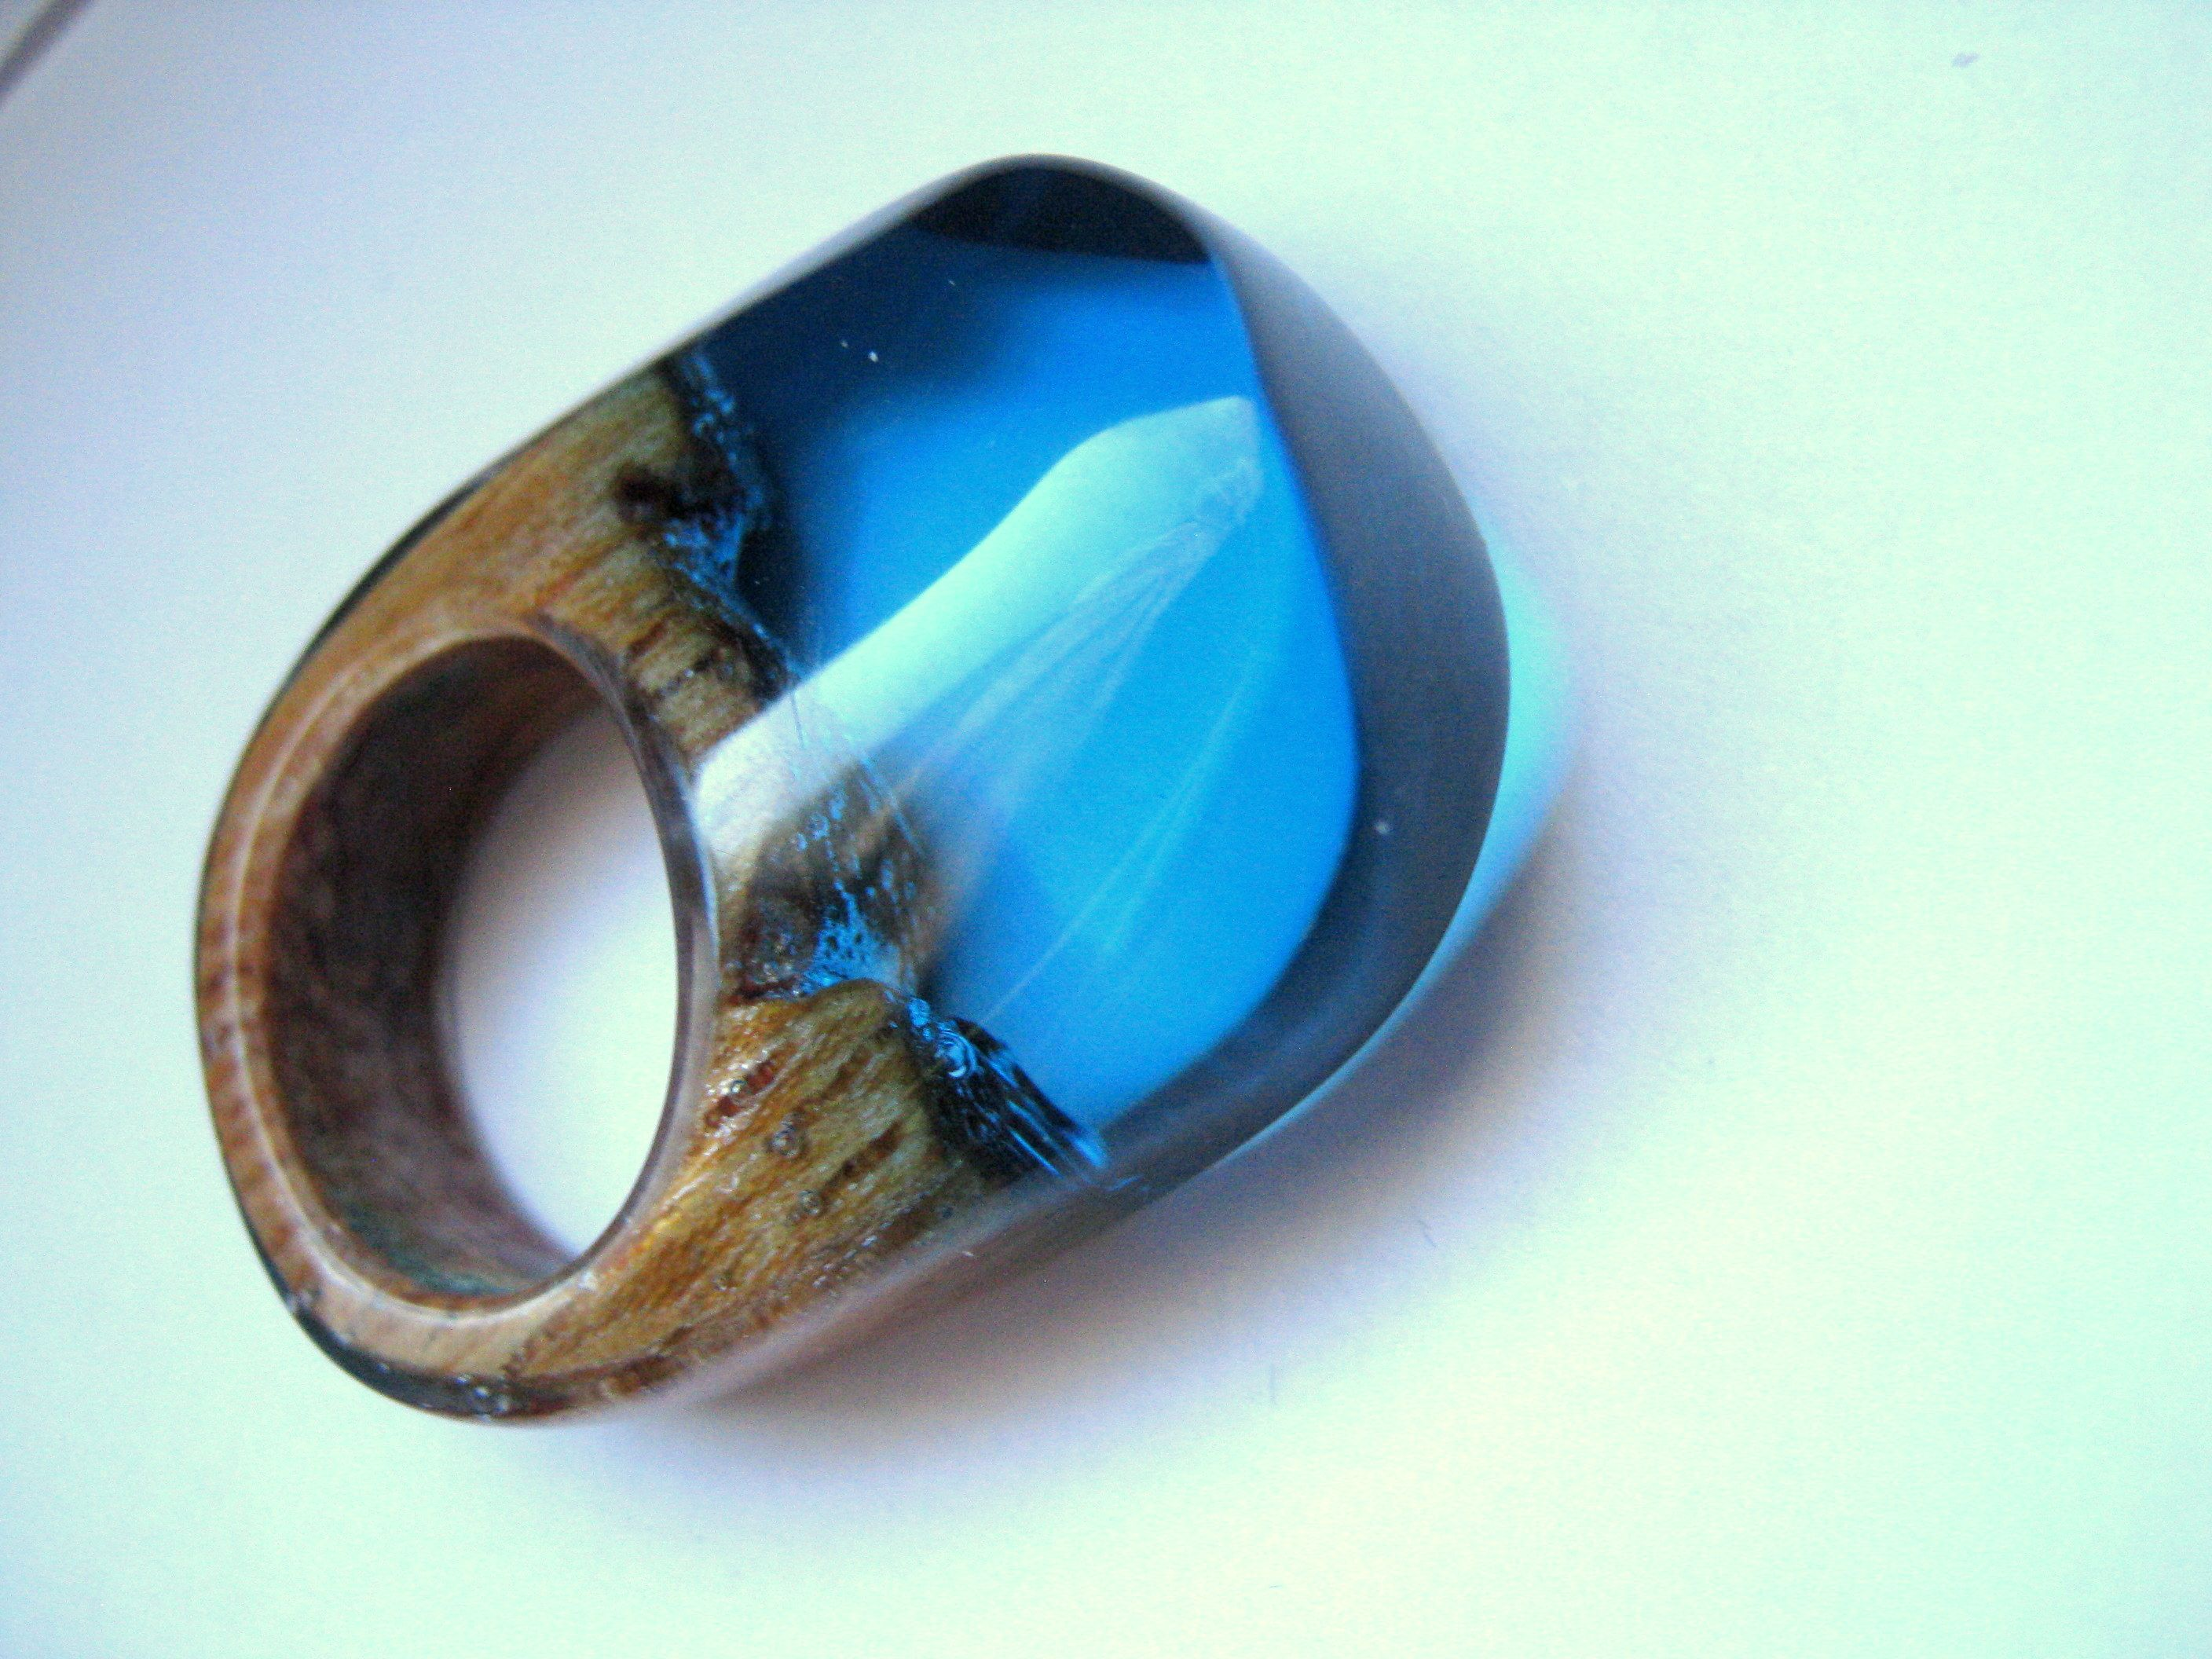 Ringe Basteln Polyester Acrylic Resin And Wood Atelier De Jade Resin